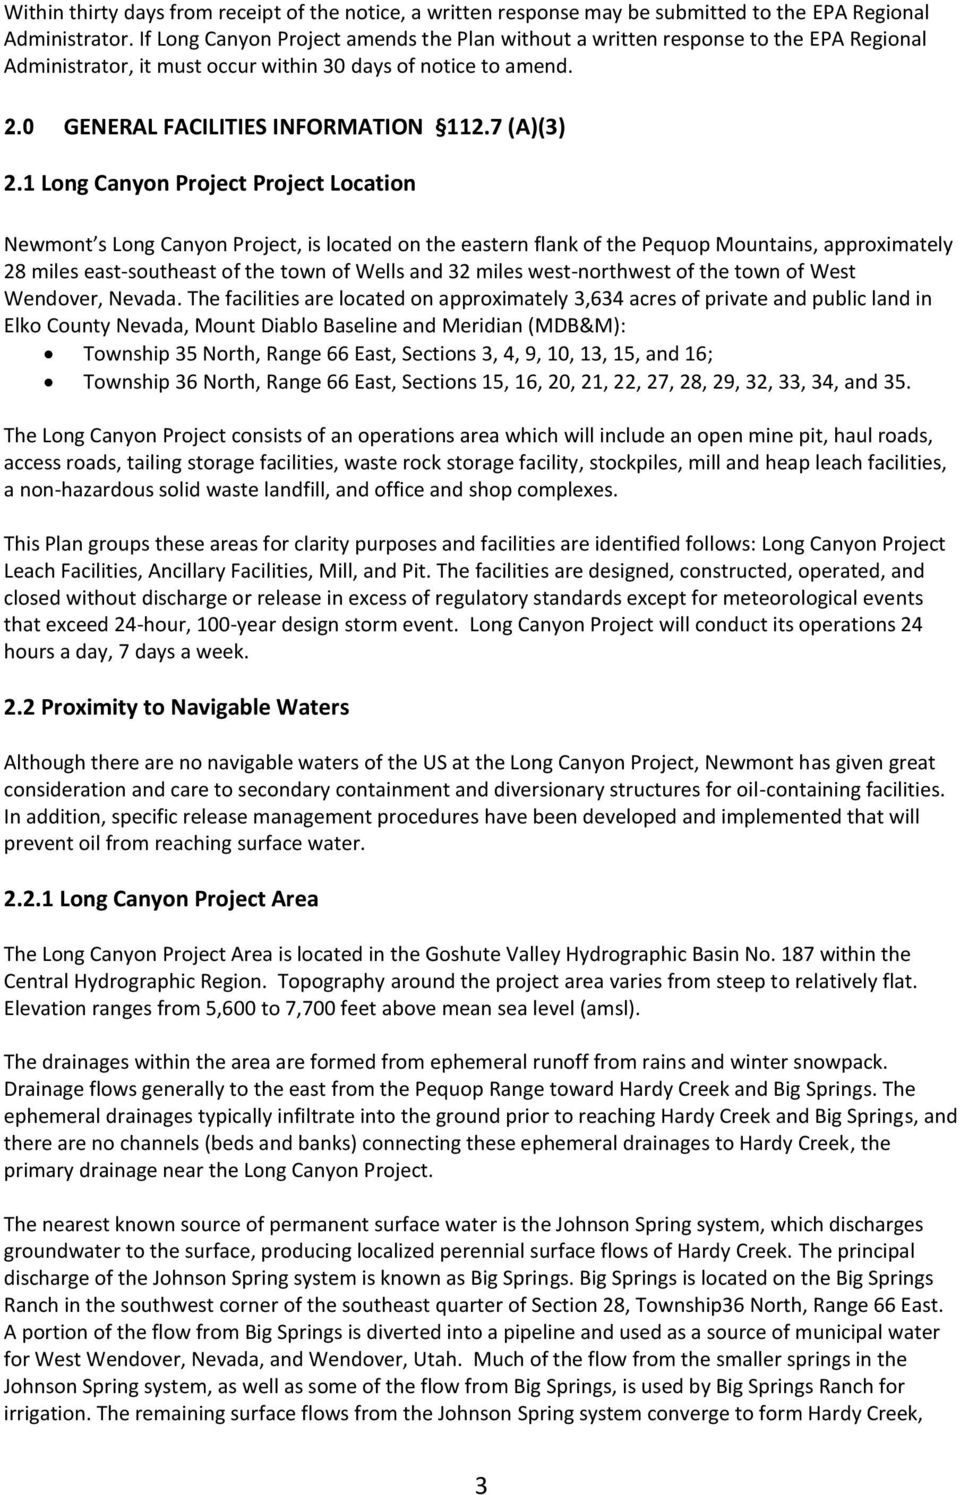 1 Long Canyon Project Project Location Newmont s Long Canyon Project, is located on the eastern flank of the Pequop Mountains, approximately 28 miles east-southeast of the town of Wells and 32 miles